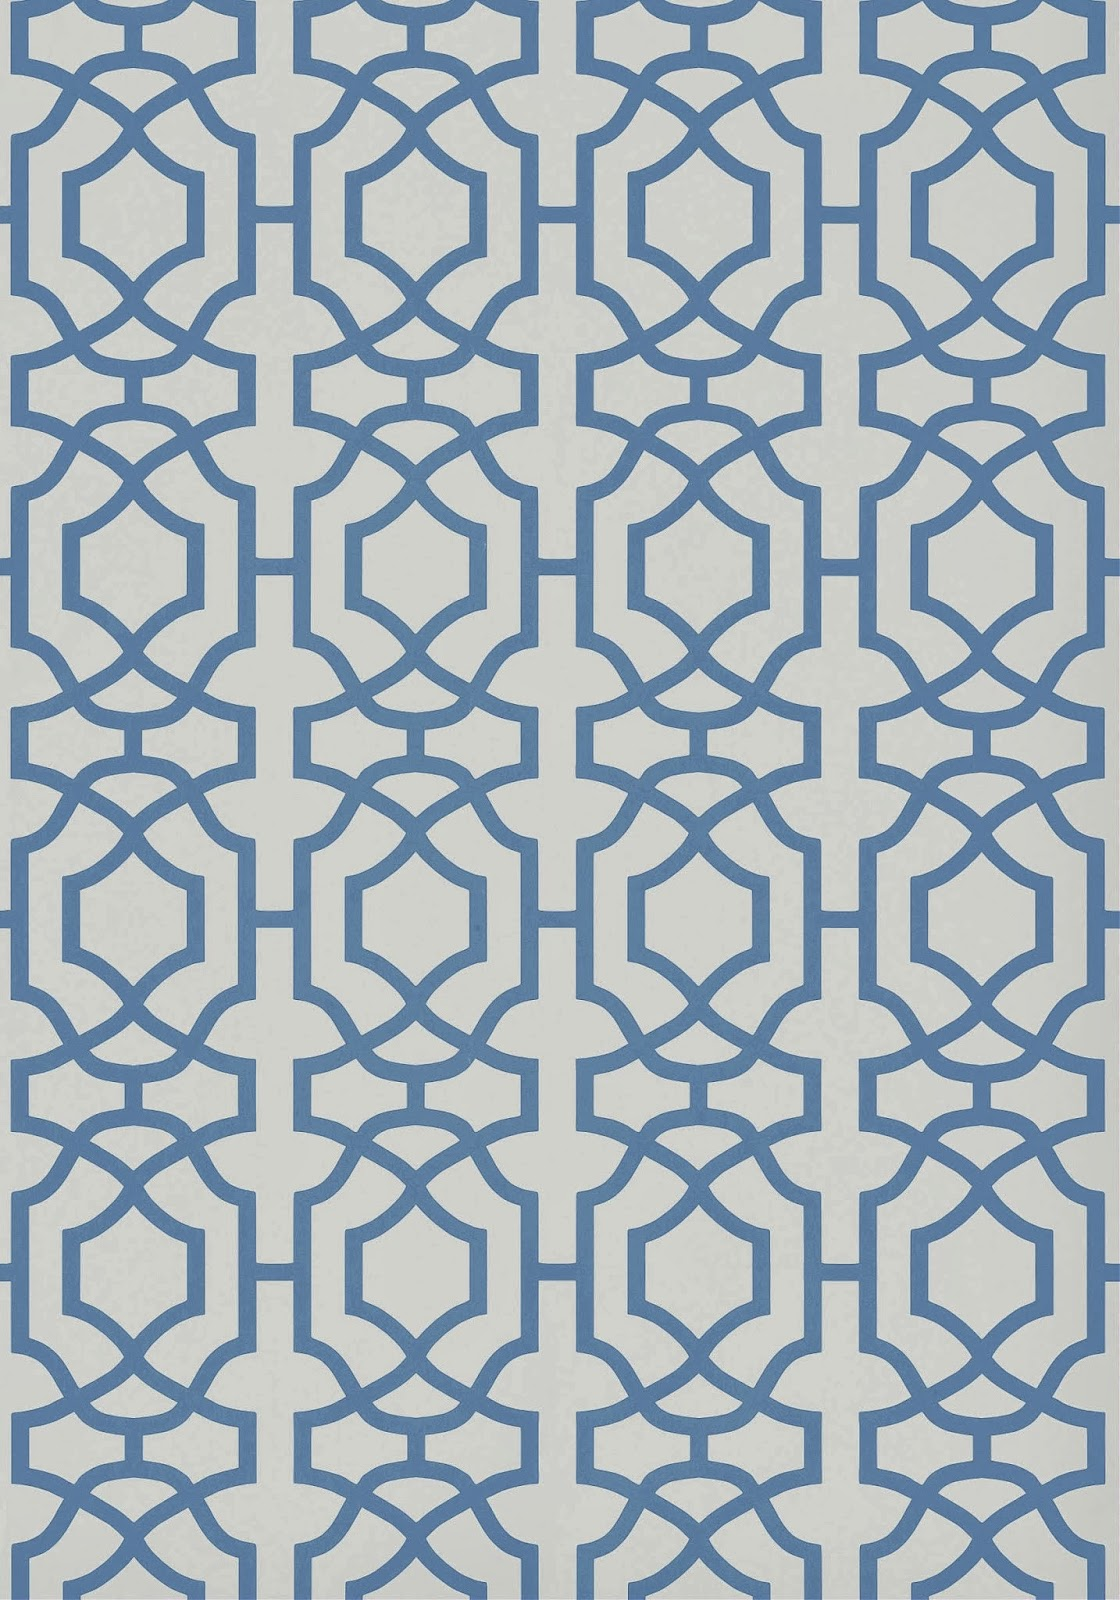 Home Styling New Wallpaper Collection by Thibaut   A Nova Coleco 1120x1600